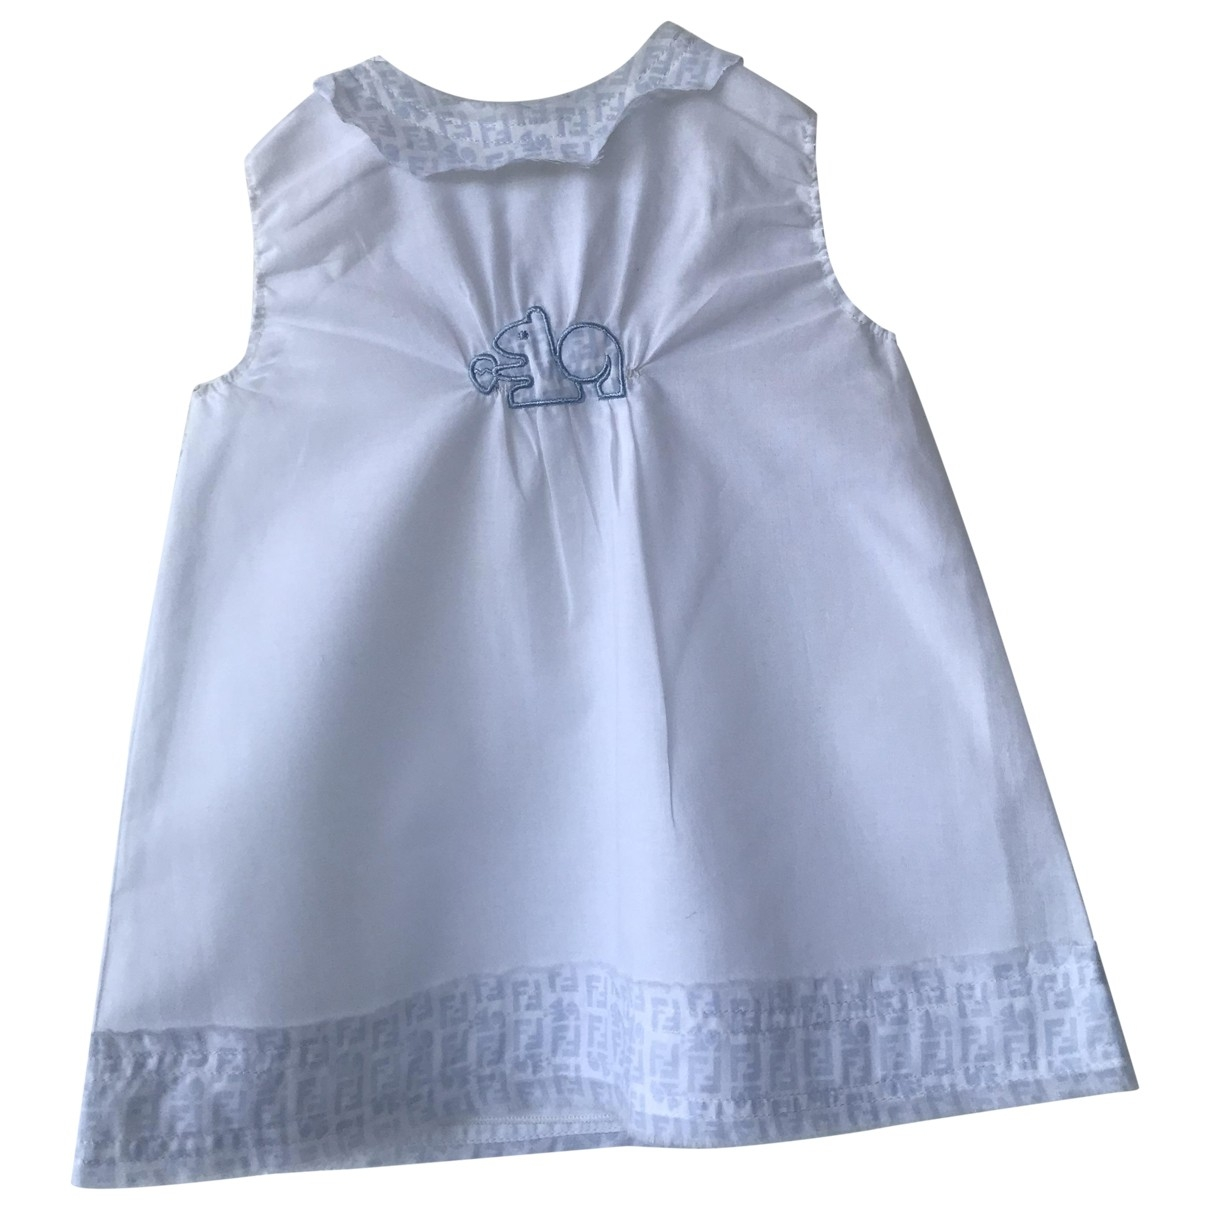 Fendi \N White Cotton dress for Kids 3 months - up to 60cm FR